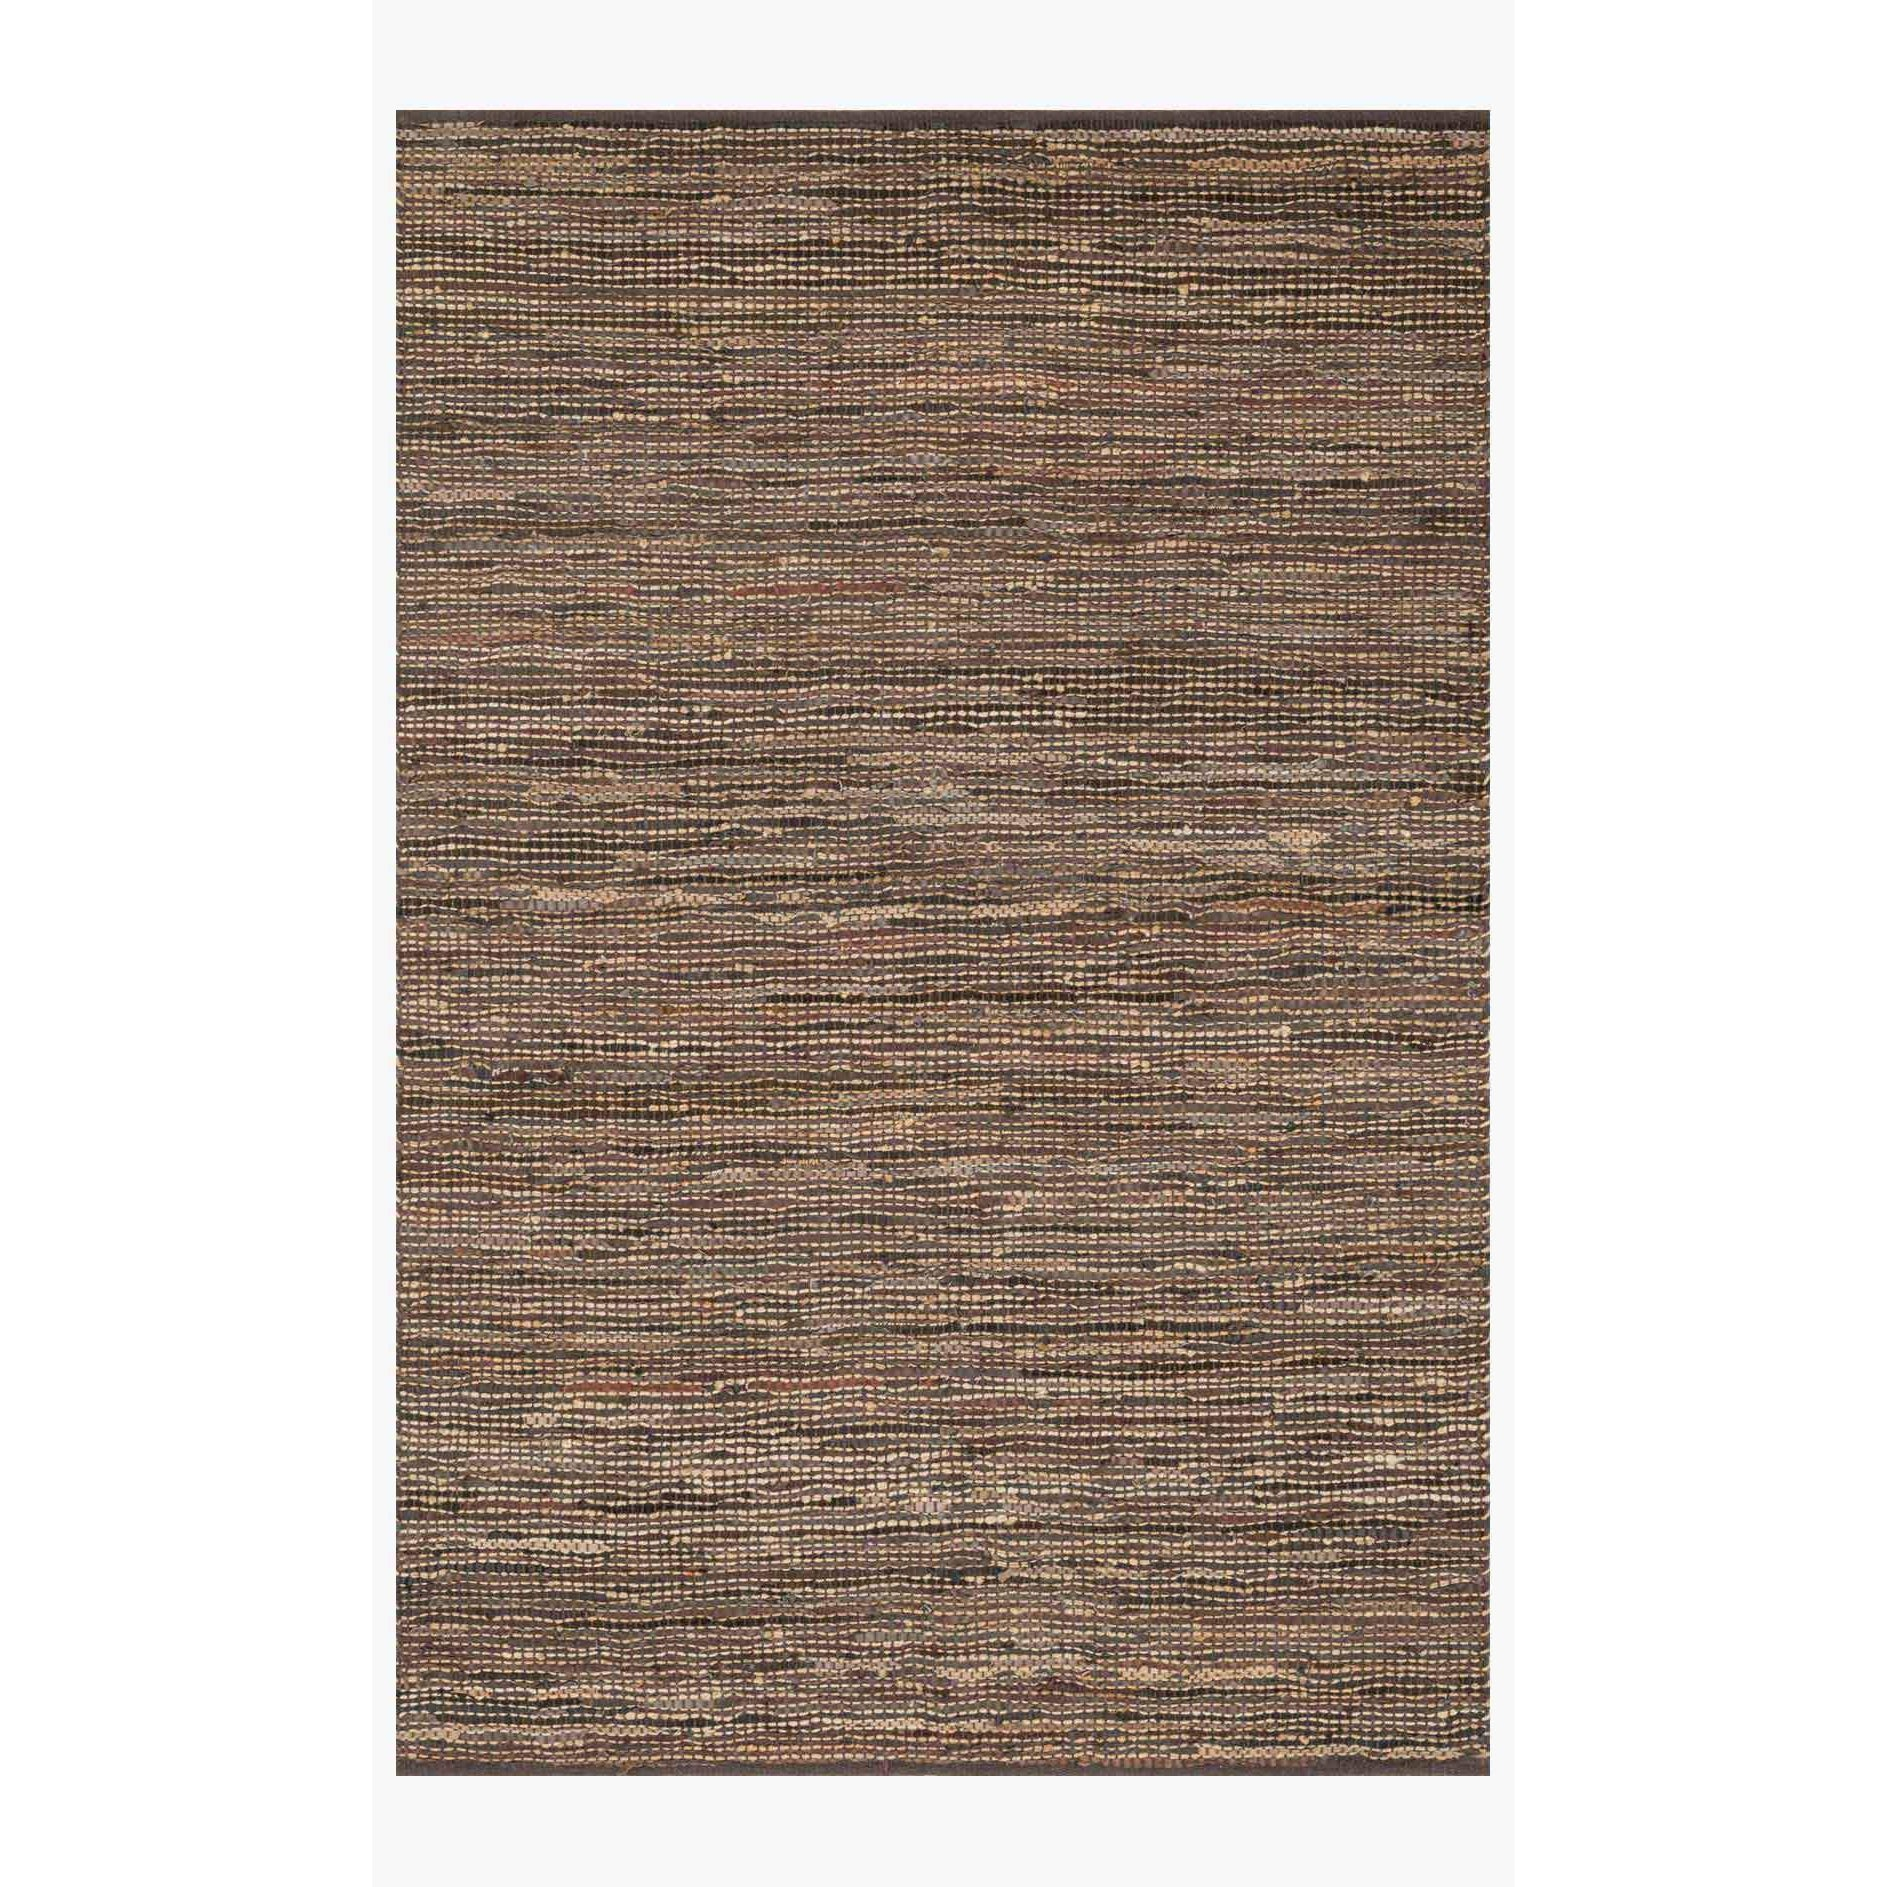 Edge Rug by Loloi Rugs - ED-01 - Brown-Loloi Rugs-Blue Hand Home